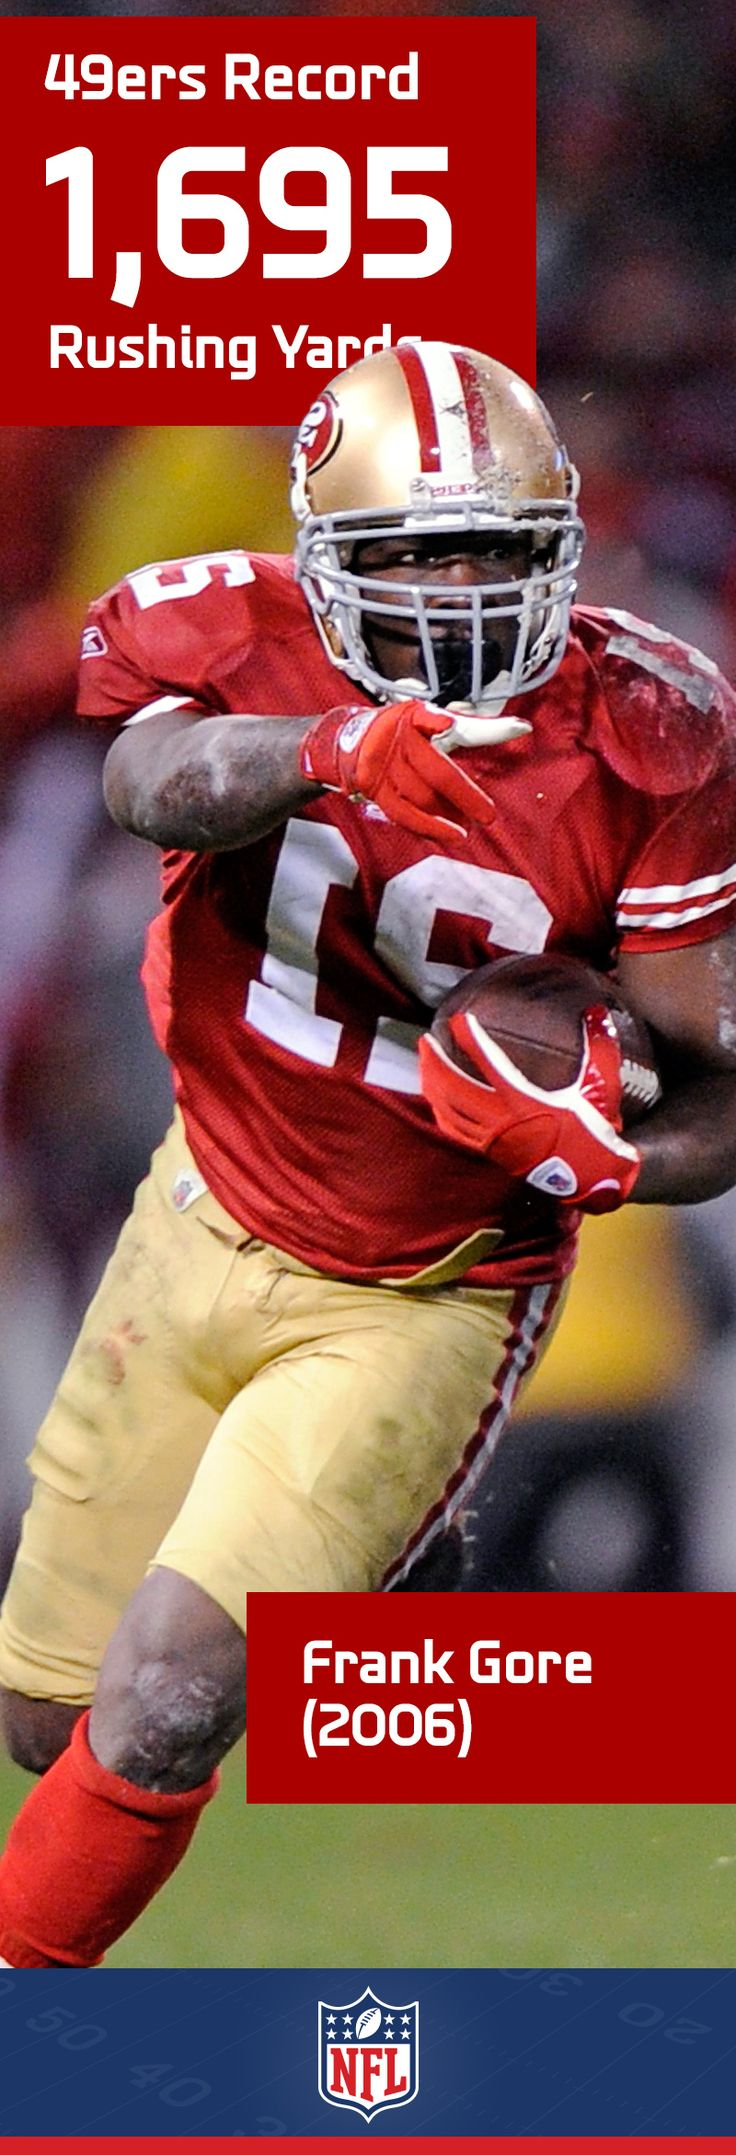 Frank Gore spent the last 10 seasons carrying San Francisco's rushing attack.